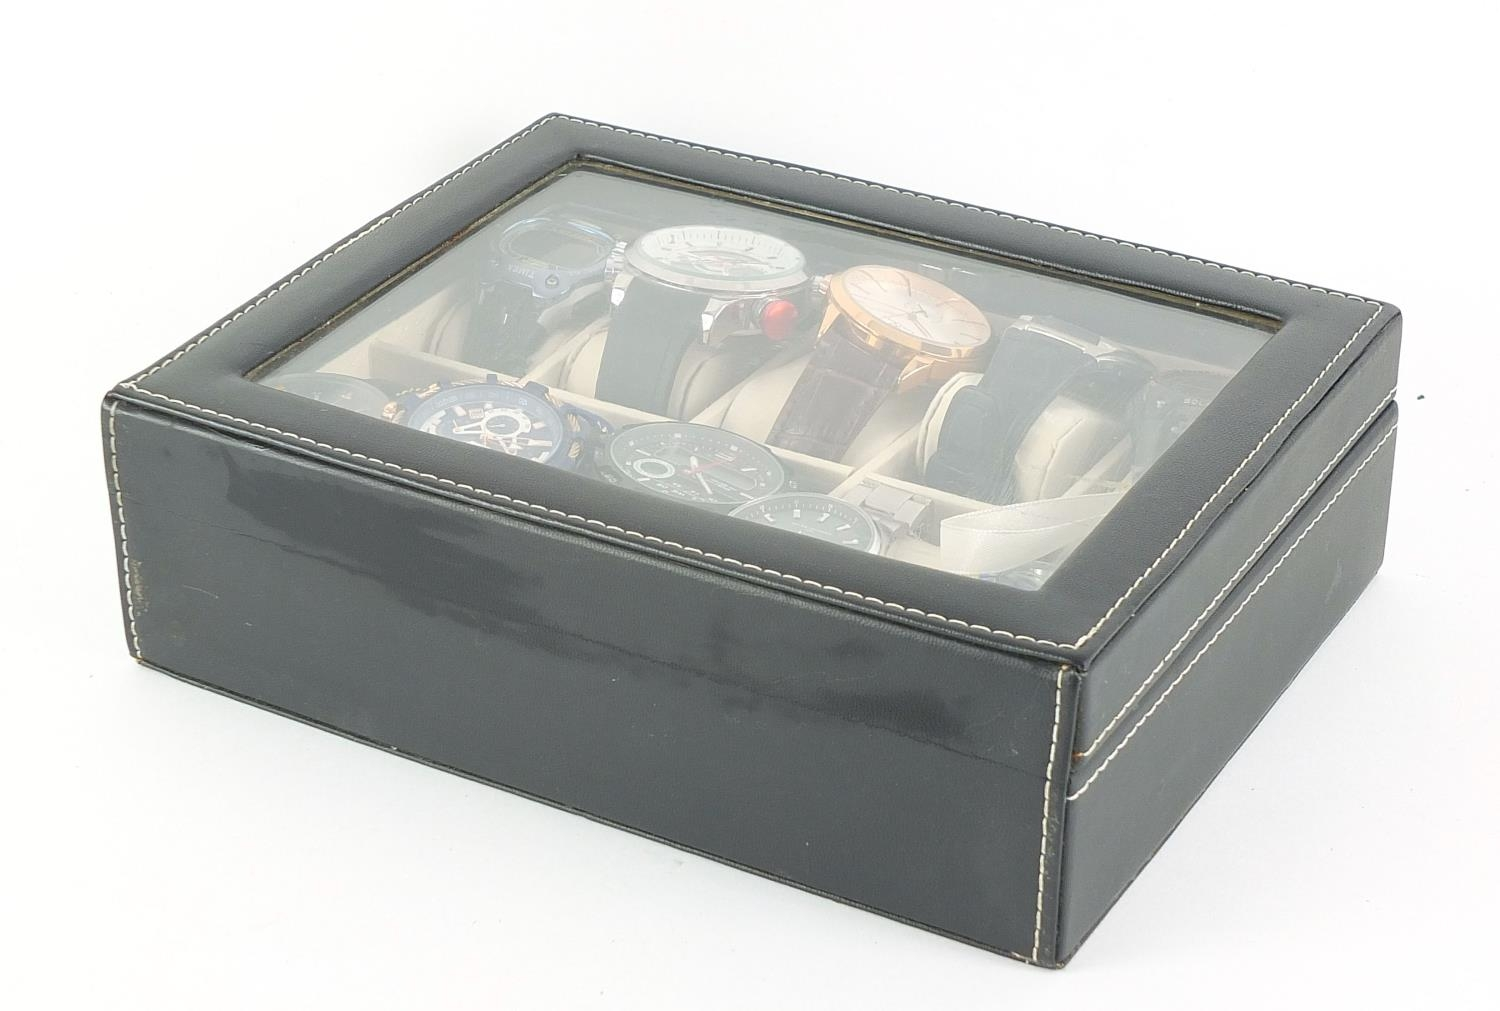 Ten gentlemen's wrist watches housed in a display case, including Megalith, Casio and Timex :For - Image 4 of 4